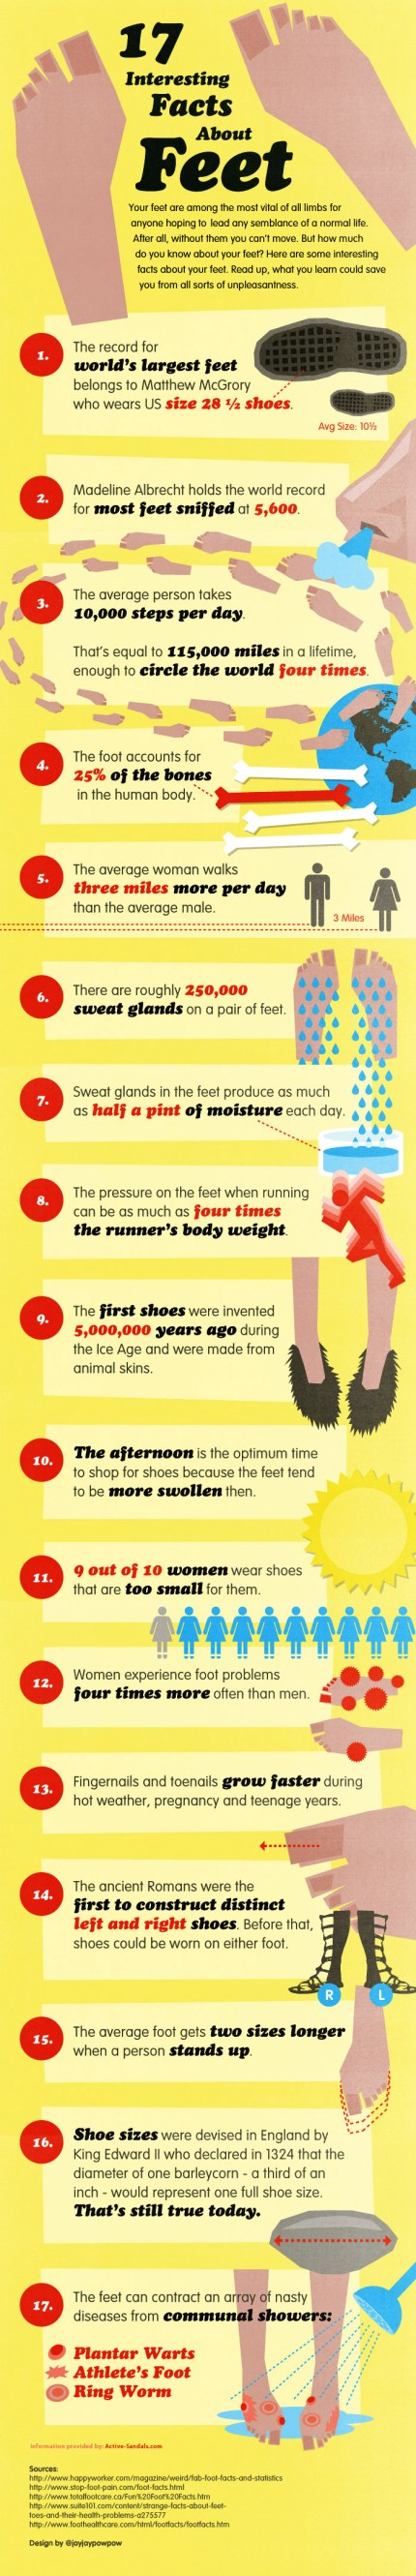 Facts about your Feet